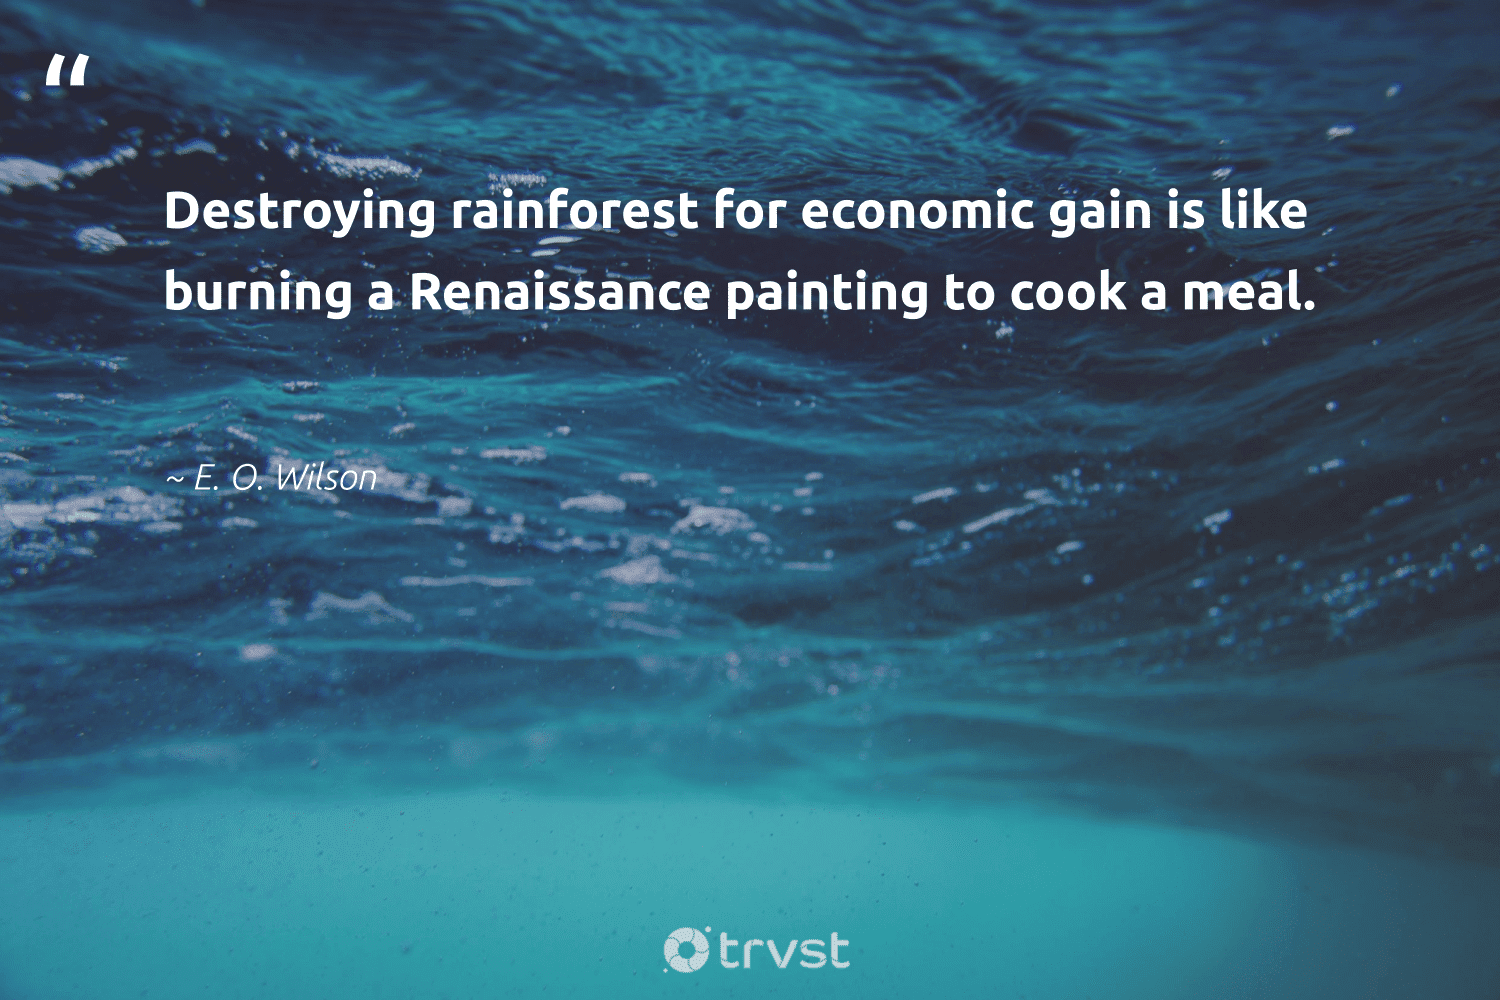 """""""Destroying rainforest for economic gain is like burning a Renaissance painting to cook a meal.""""  - E. O. Wilson #trvst #quotes #green #beinspired #ecofriendly #socialchange #sustainability #impact #getoutside #changetheworld #naturelovers #socialimpact"""